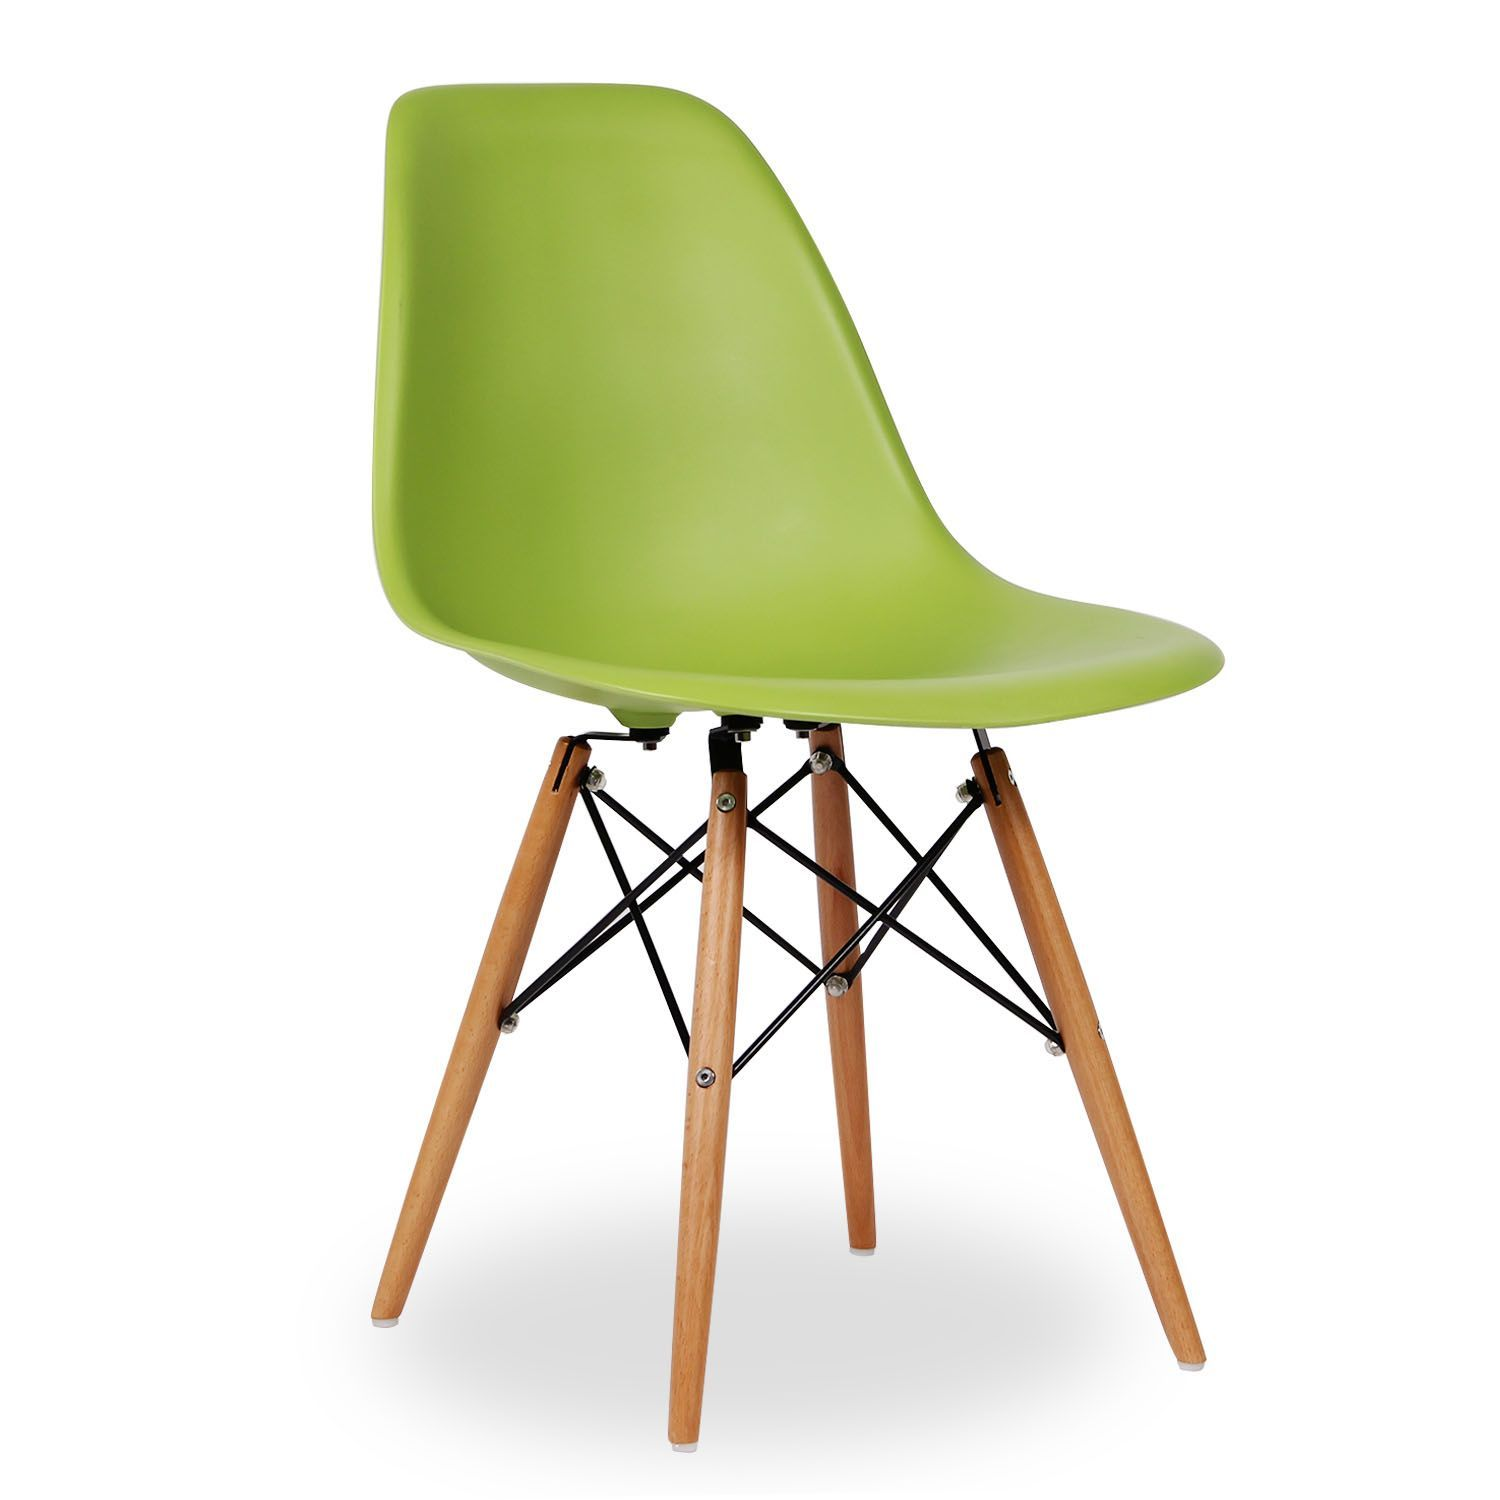 Fauteuils Dsw Wooden Chair High Quality Color Edition Design Icon